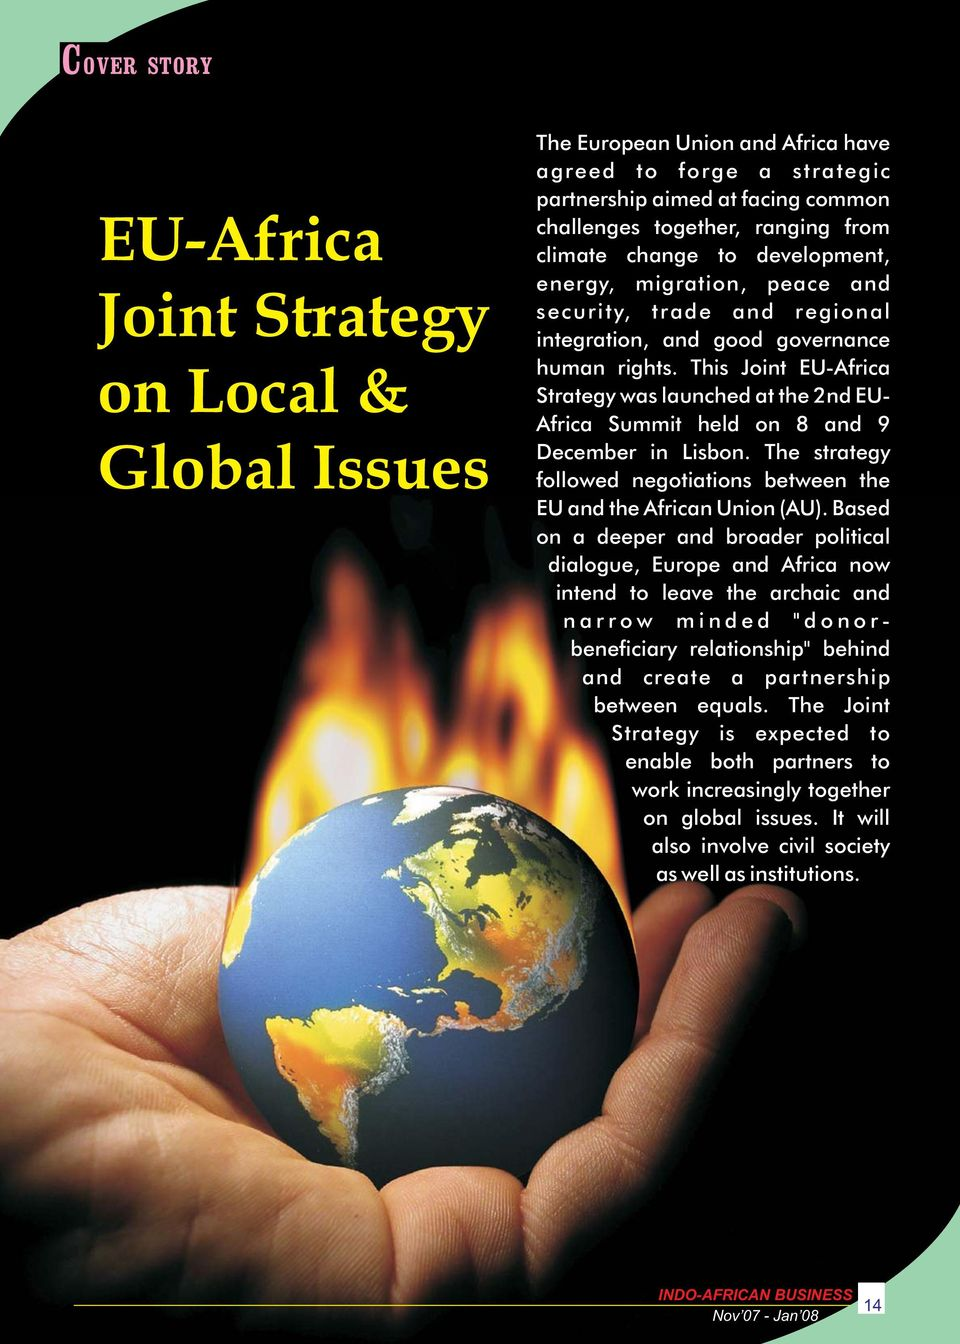 This Joint EU-Africa Strategy was launched at the 2nd EU- Africa Summit held on 8 and 9 December in Lisbon. The strategy followed negotiations between the EU and the African Union (AU).